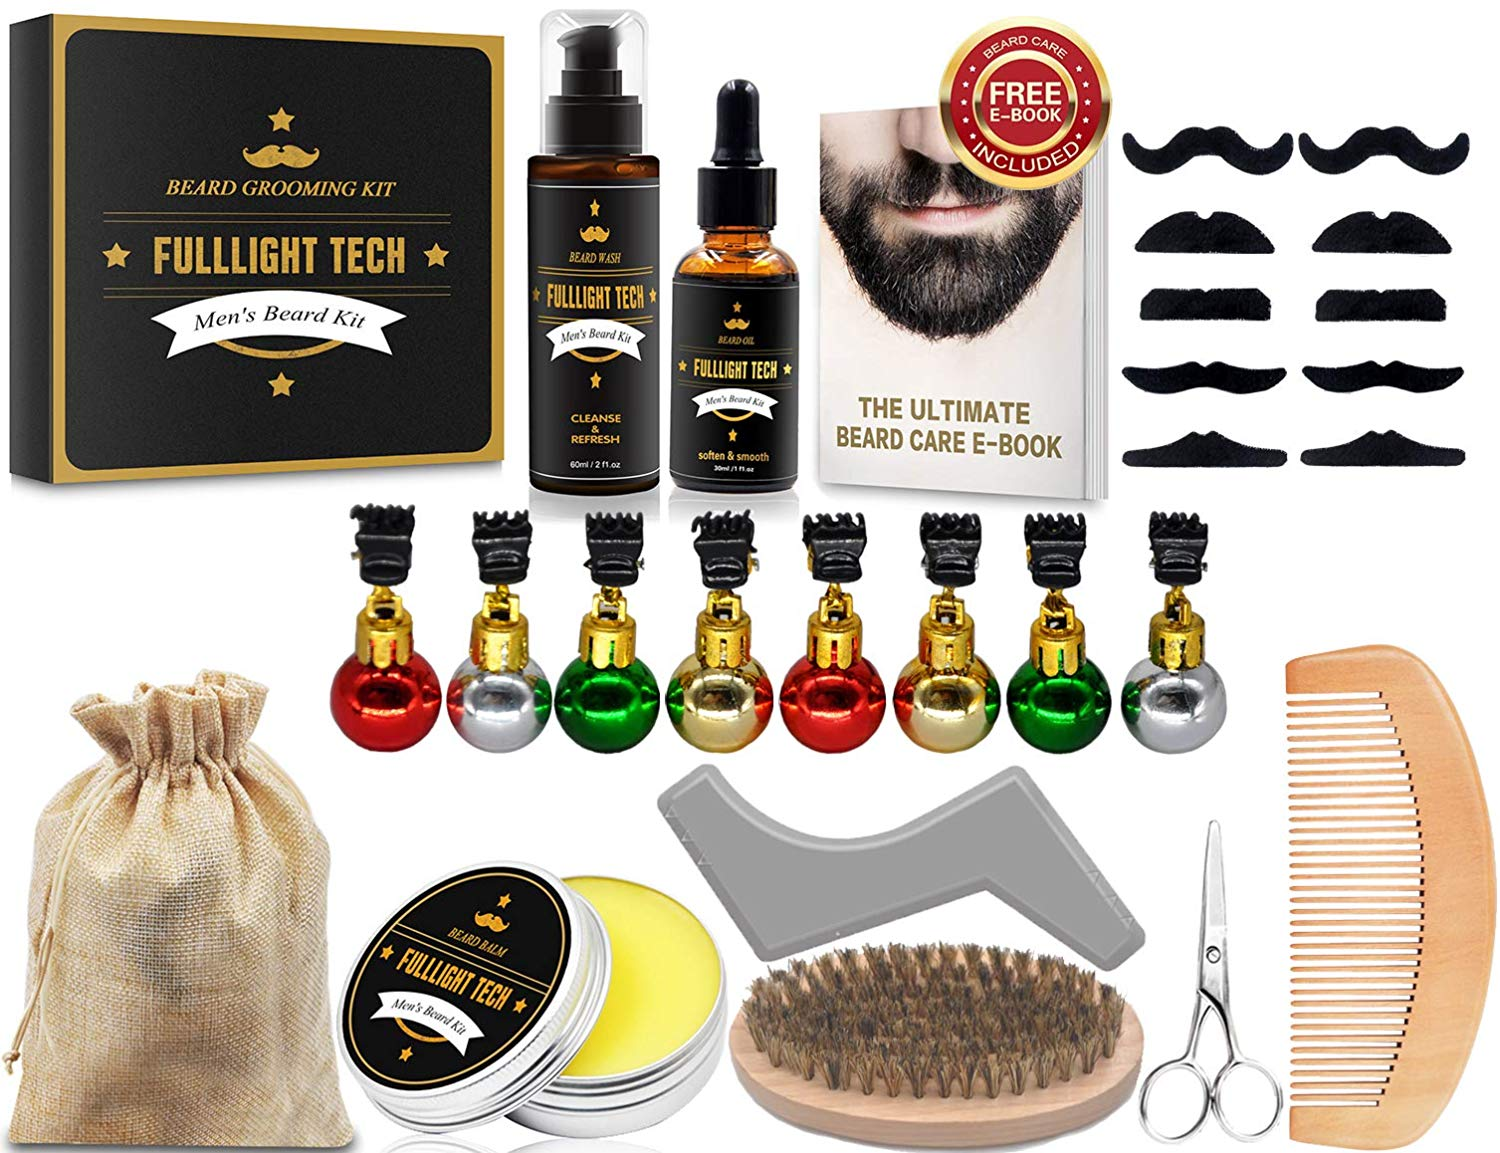 all the items you'll receive in the beard grooming kit